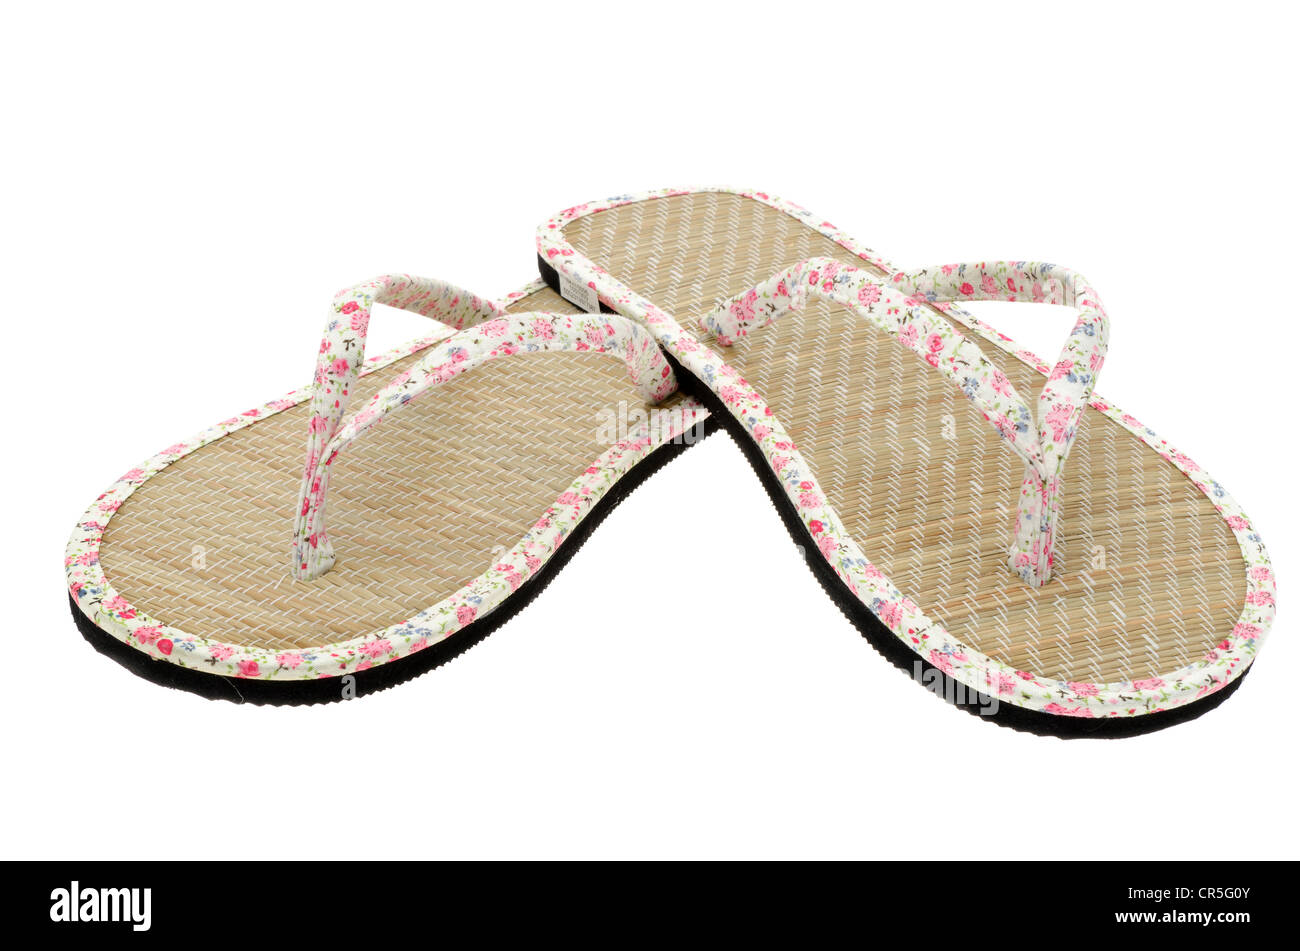 Ladies flip-flop summer sandals - image taken in the studio with a white background - Stock Image